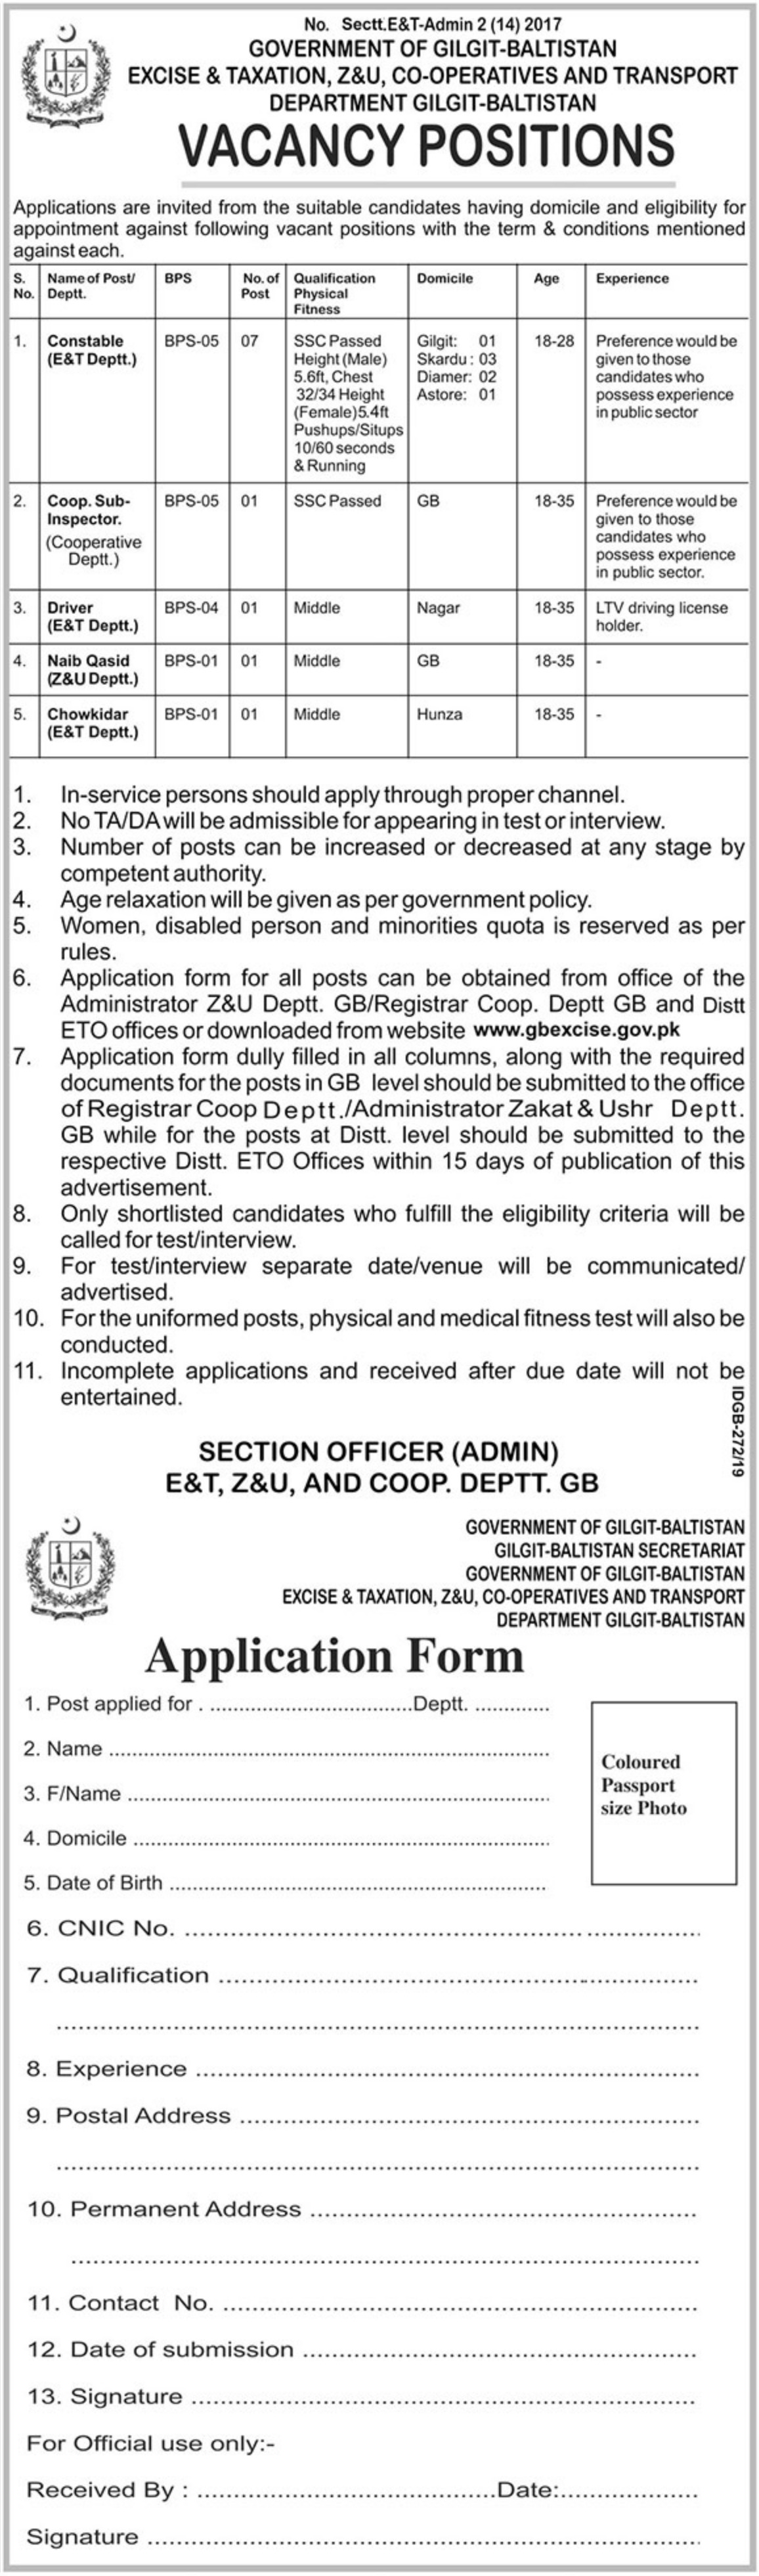 Excise Taxation Z&U Cooperatives and Transport Department Gilgit Baltistan Jobs 2019